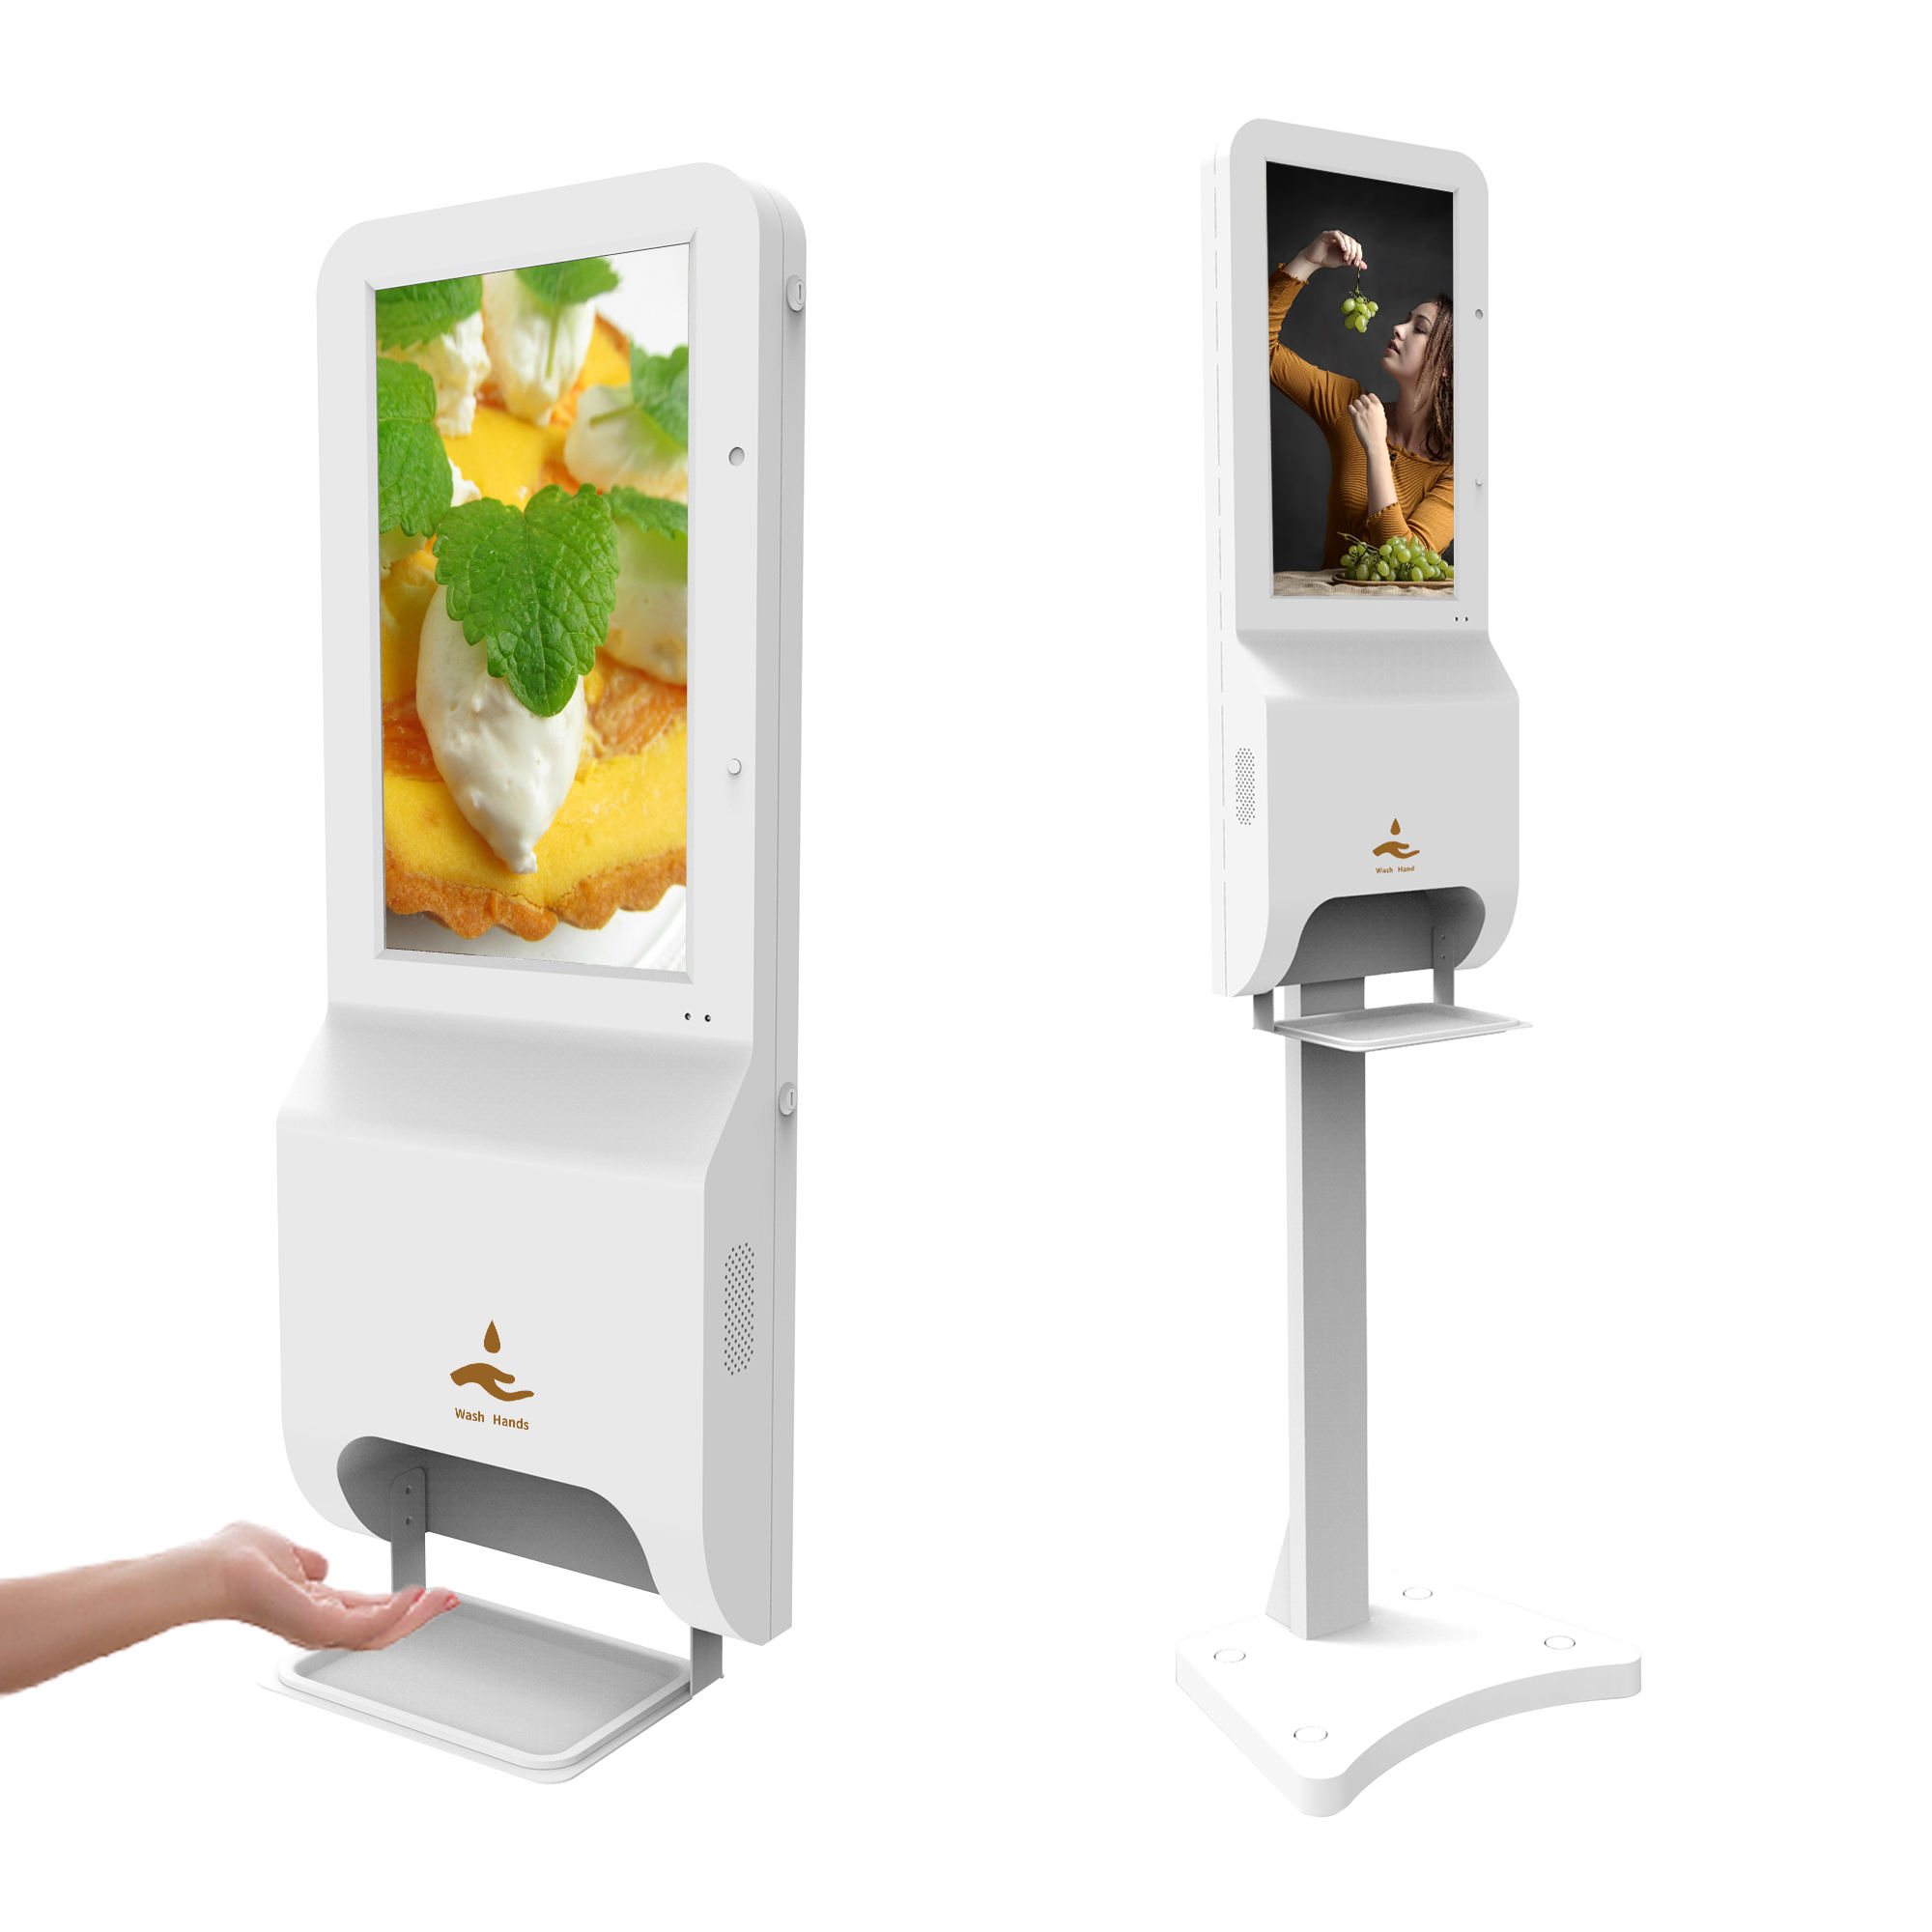 outdoor floor standing wall mount digital signage hand sanitizer dispenser disinfection temperature sensor kiosk